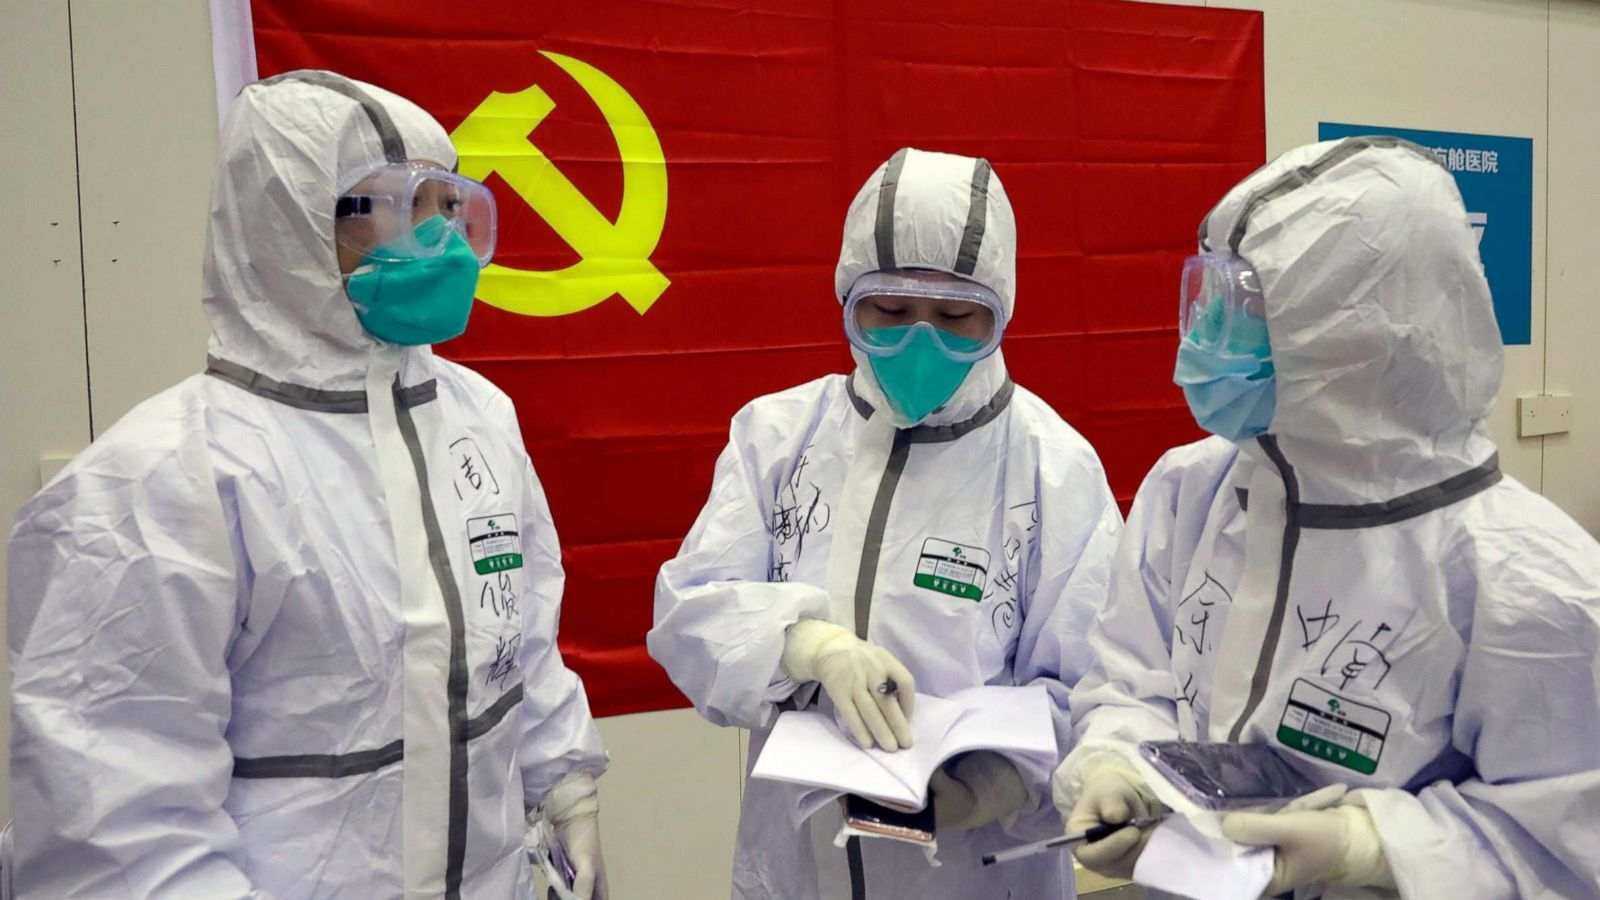 Wuhan Scientists Defect to West: World Ready For Action Against China?